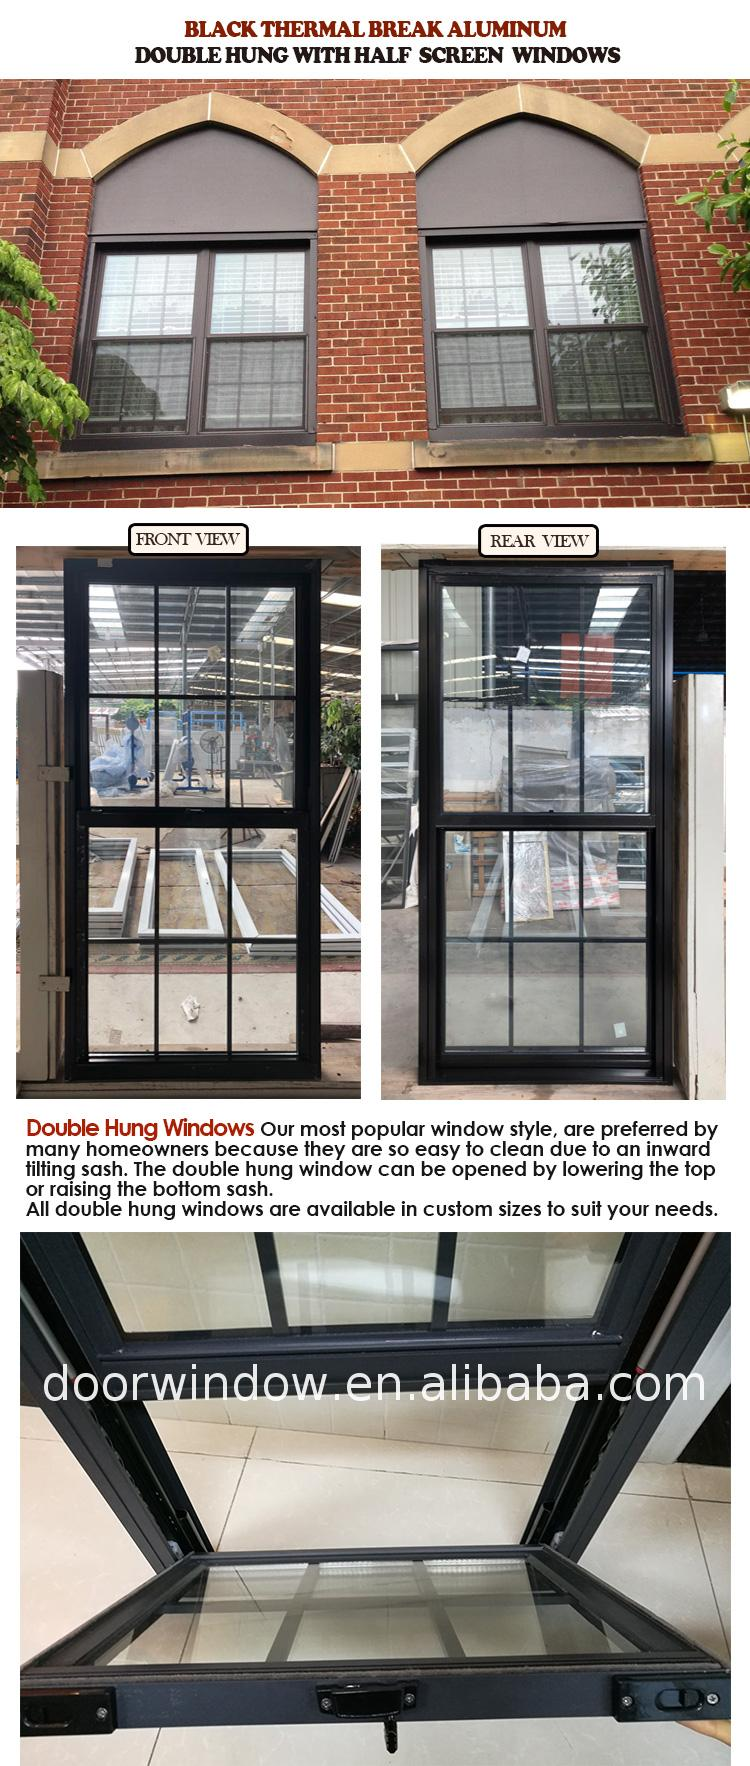 High quality aluminium double hung window